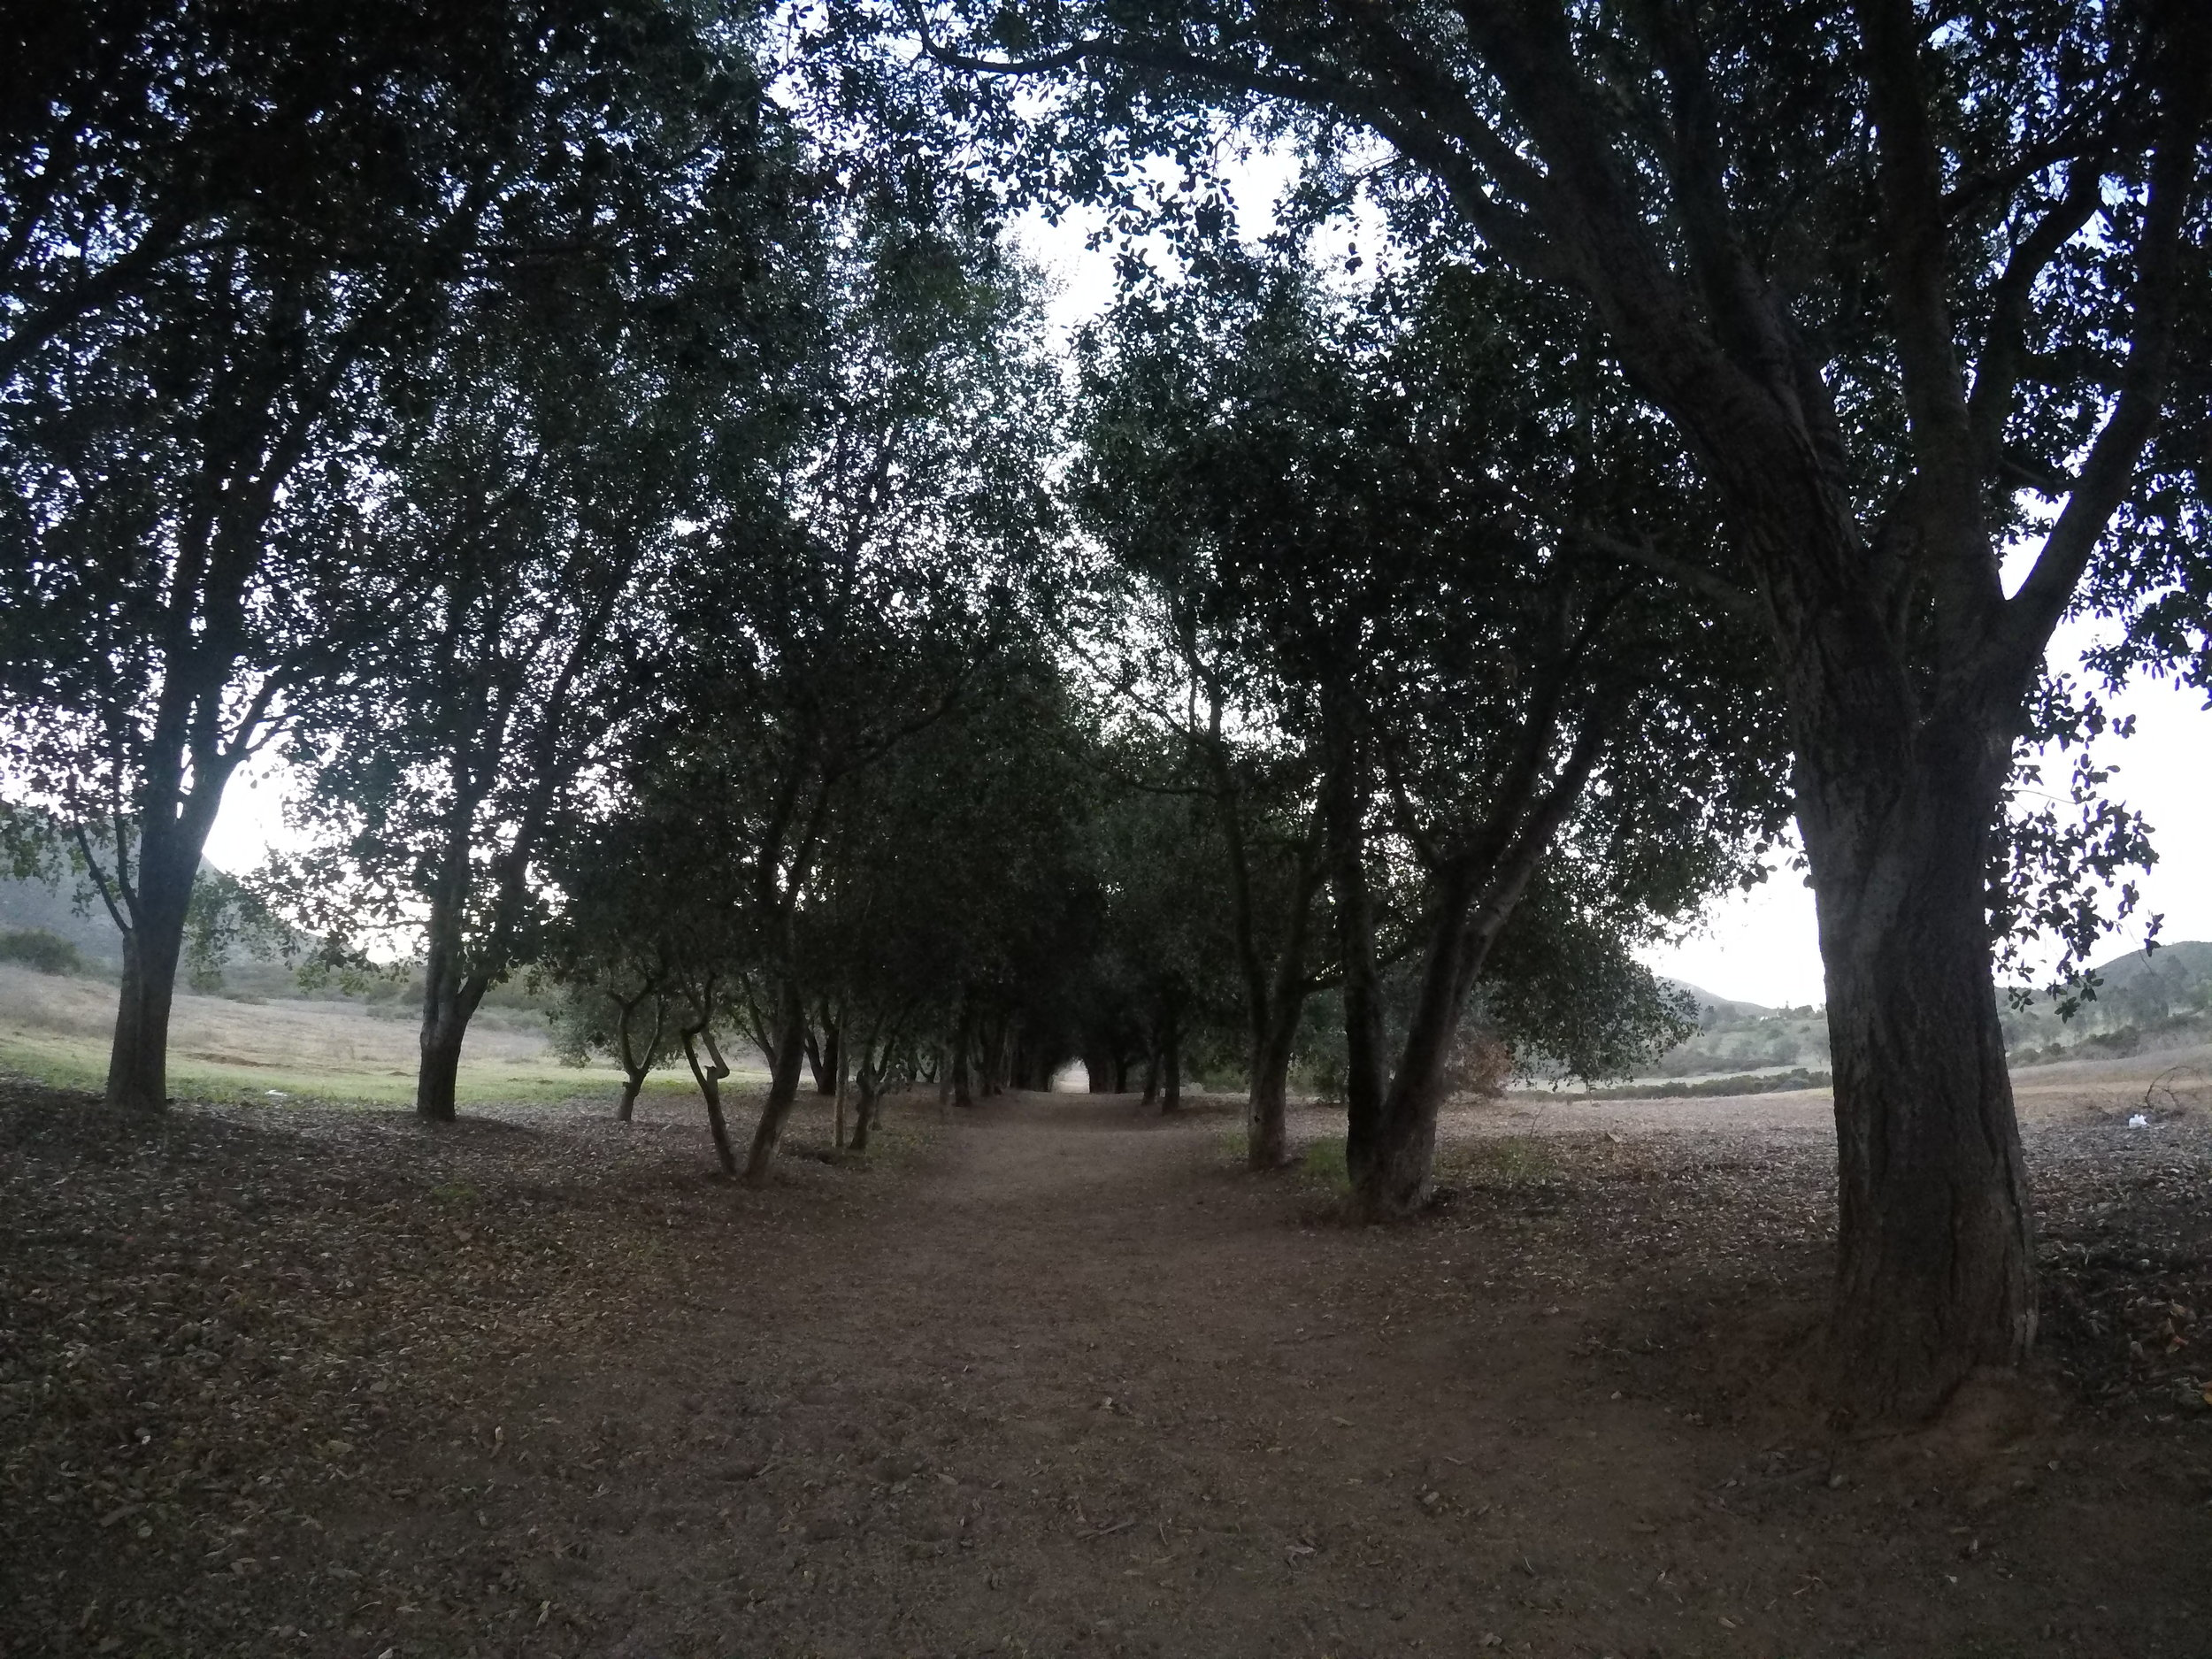 The first section of the Iron Mountain Trail heads through a scenic oak grove.